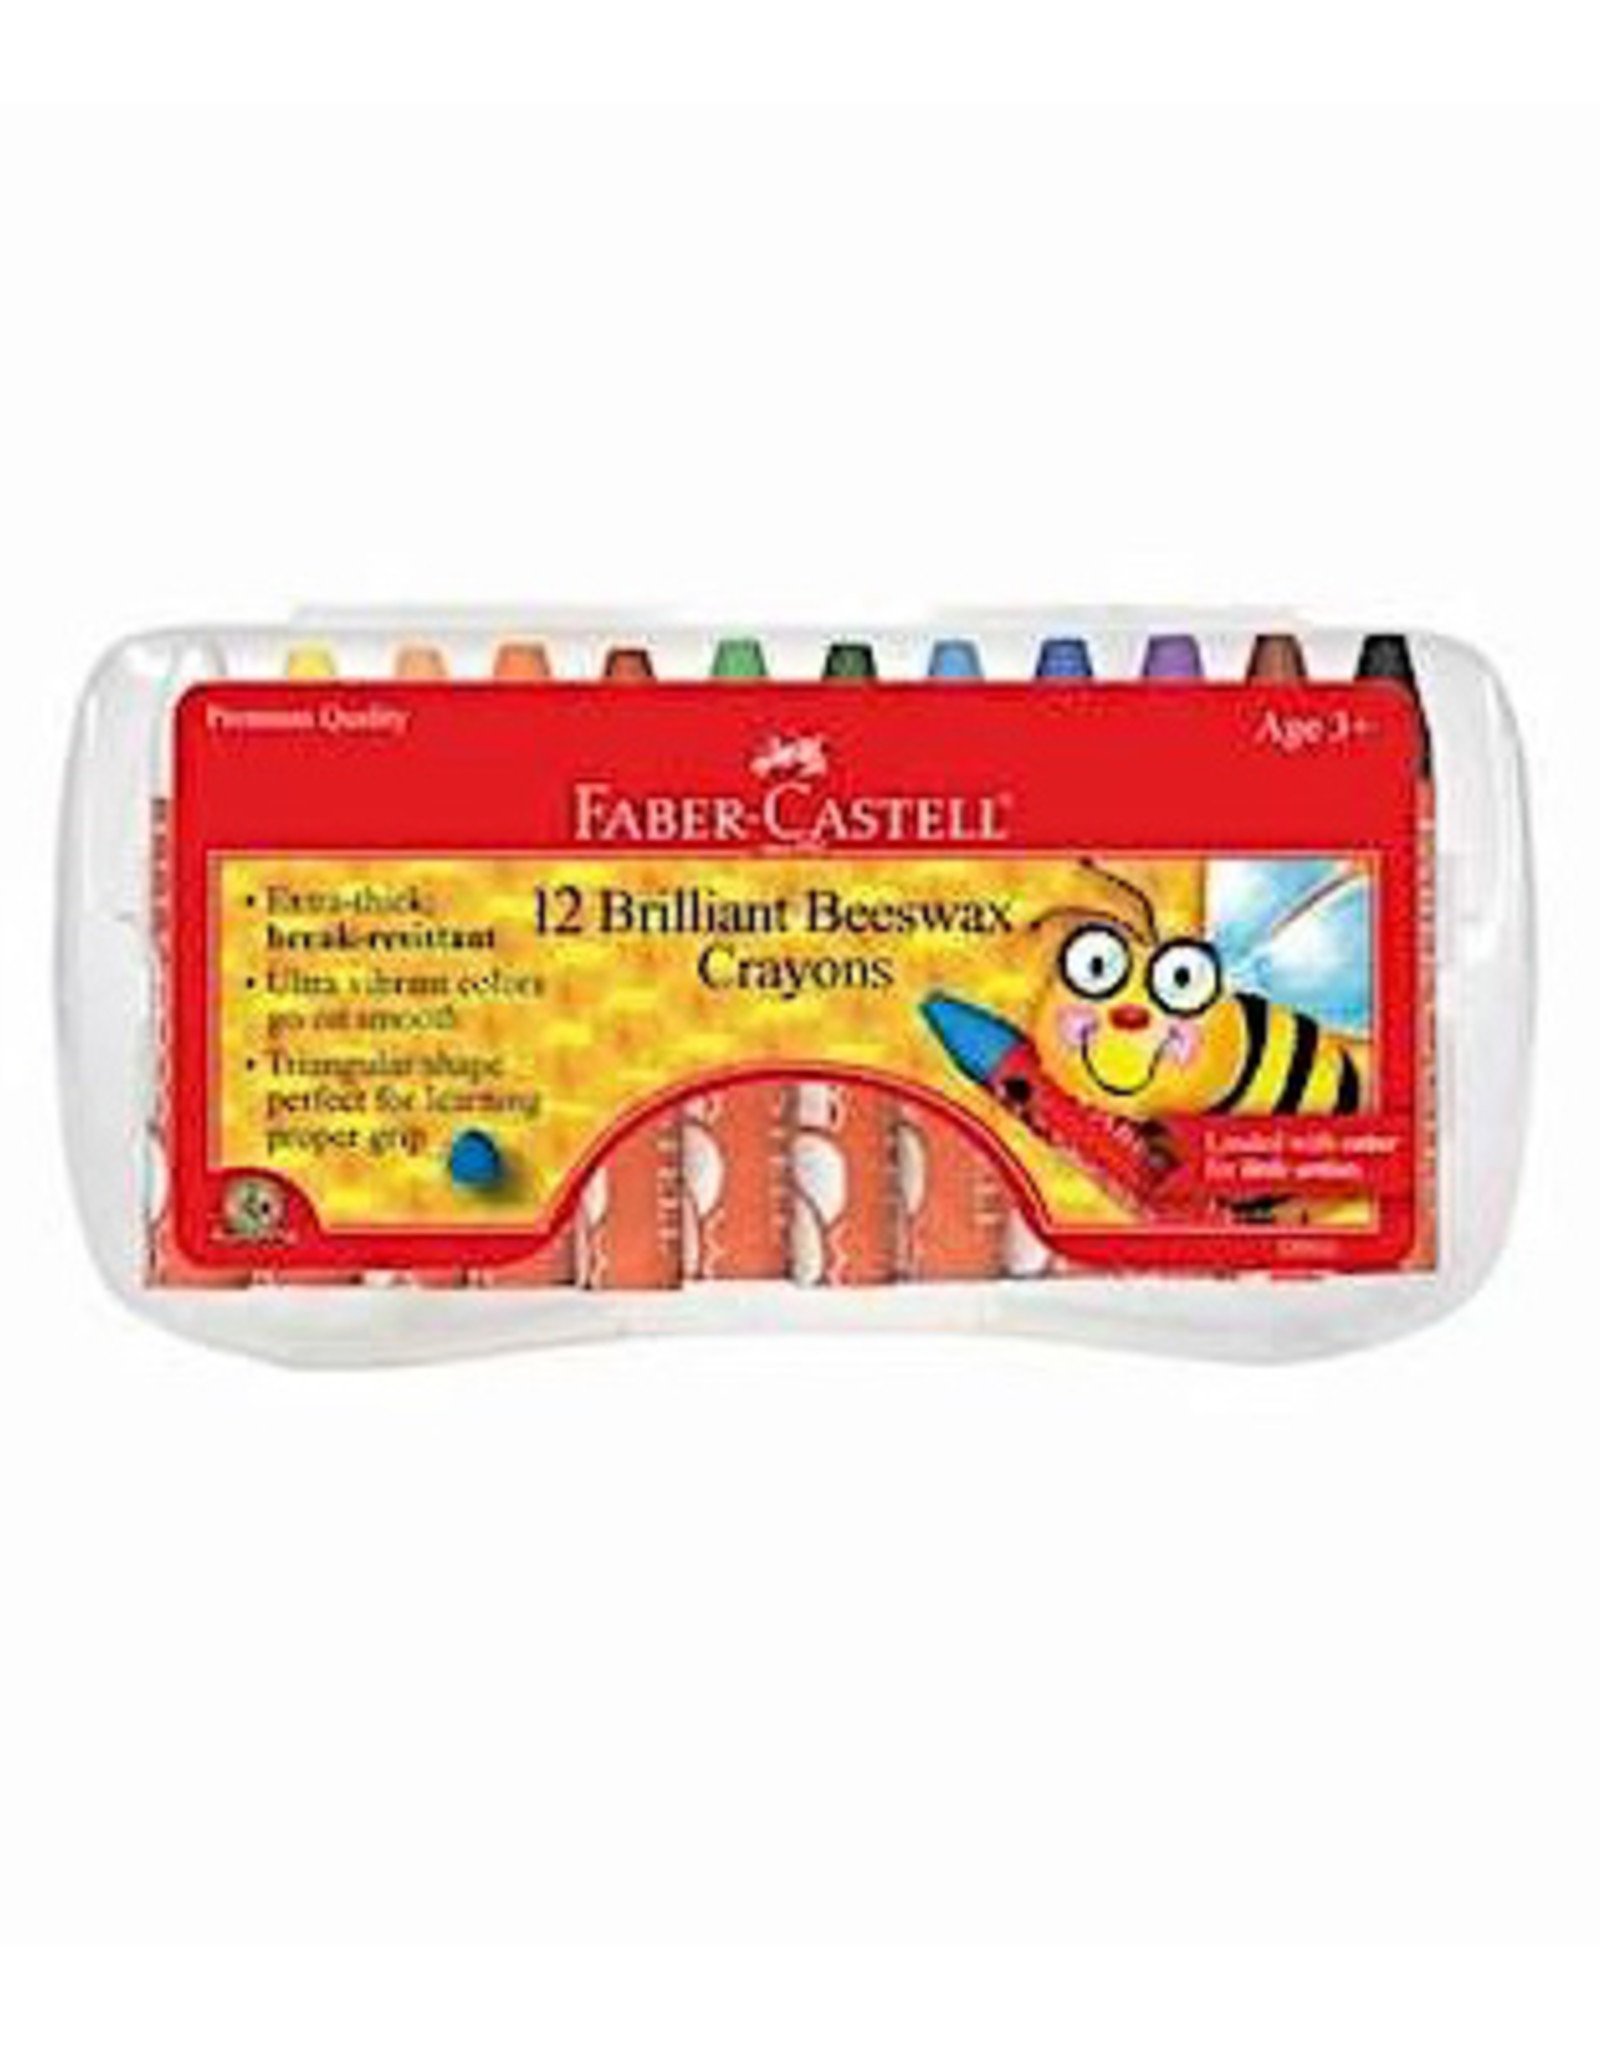 Faber Castell 12ct Brilliant Beeswax Crayons in Storage Case